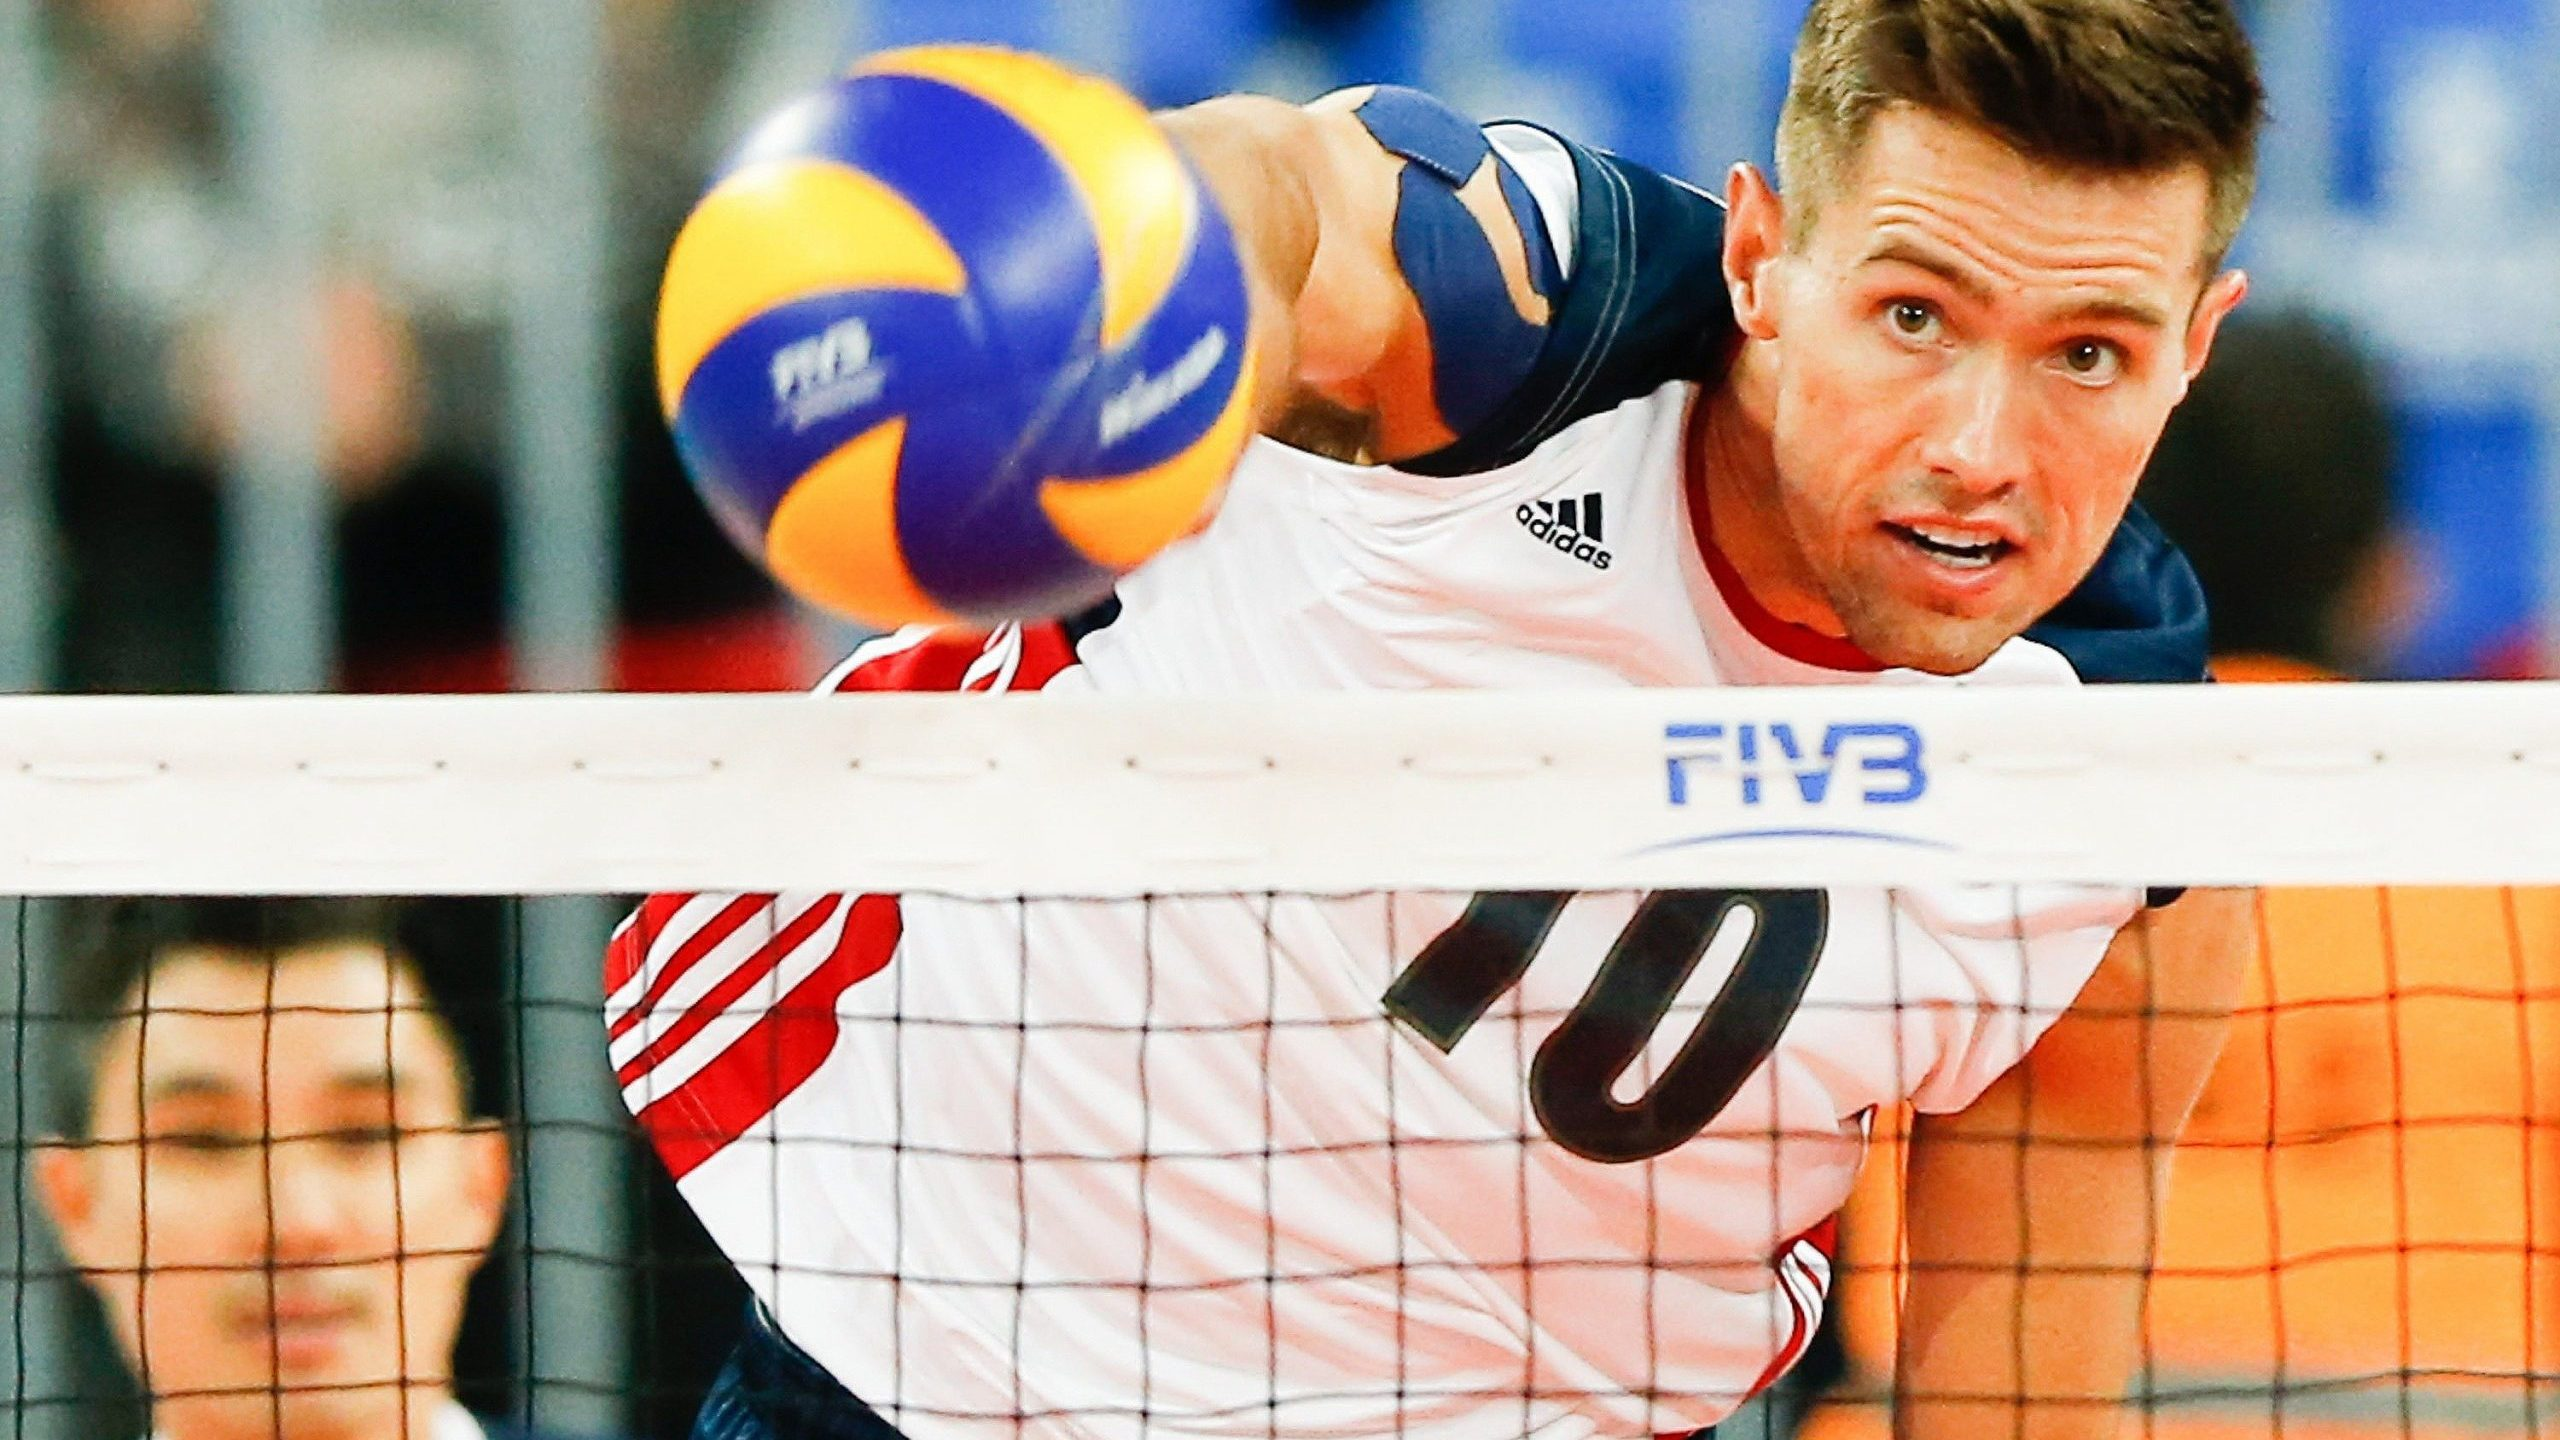 Quest For Gold Episode 25 Thomas Jaeschke On Making The 2020 U S Men S Volleyball Olympic Roster I Can Feel The Energy In My Body How Bad I Want It Wgn